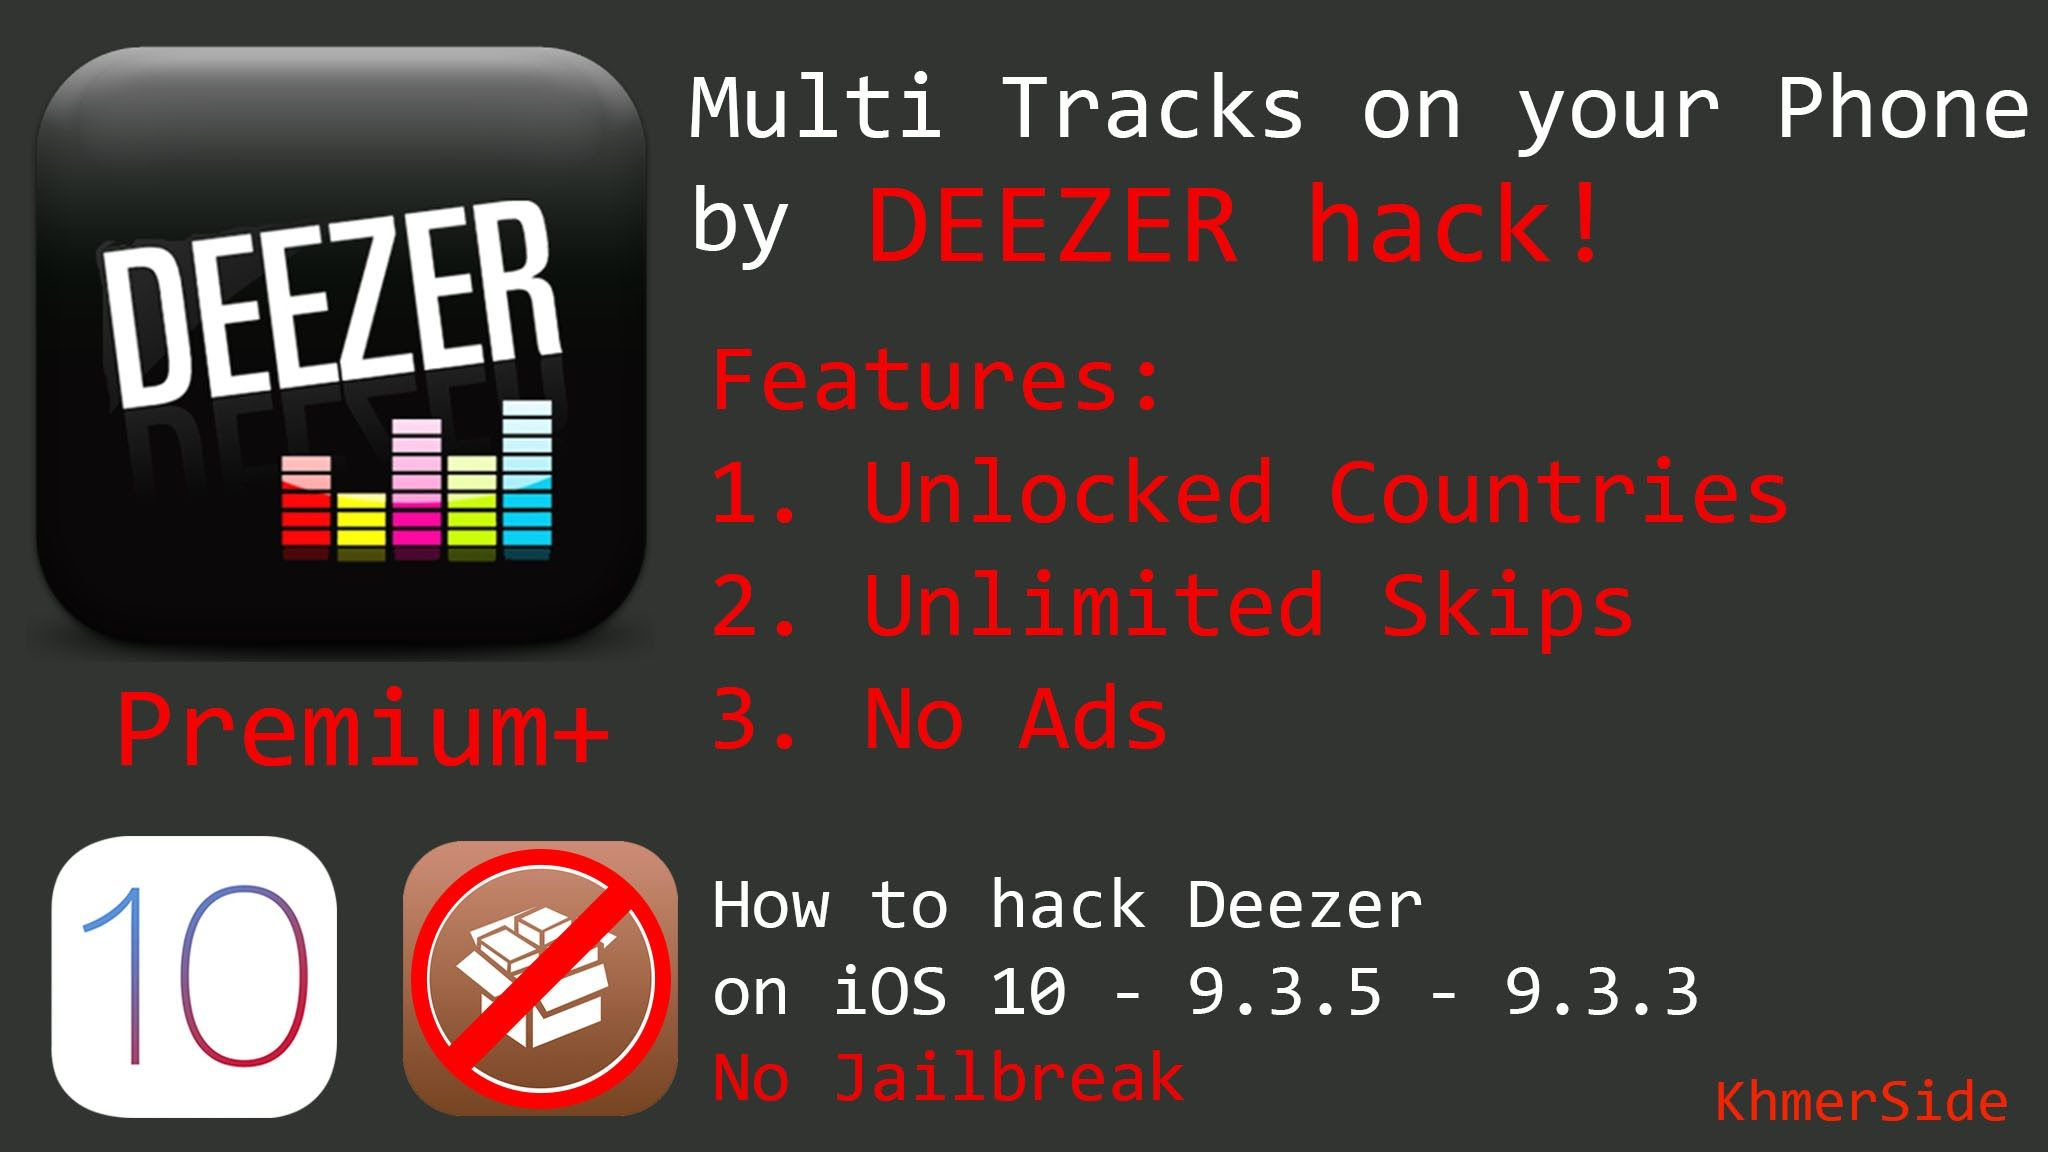 How to hack Deezer on iDevices iOS 10 - 9 3 5/9 (NO